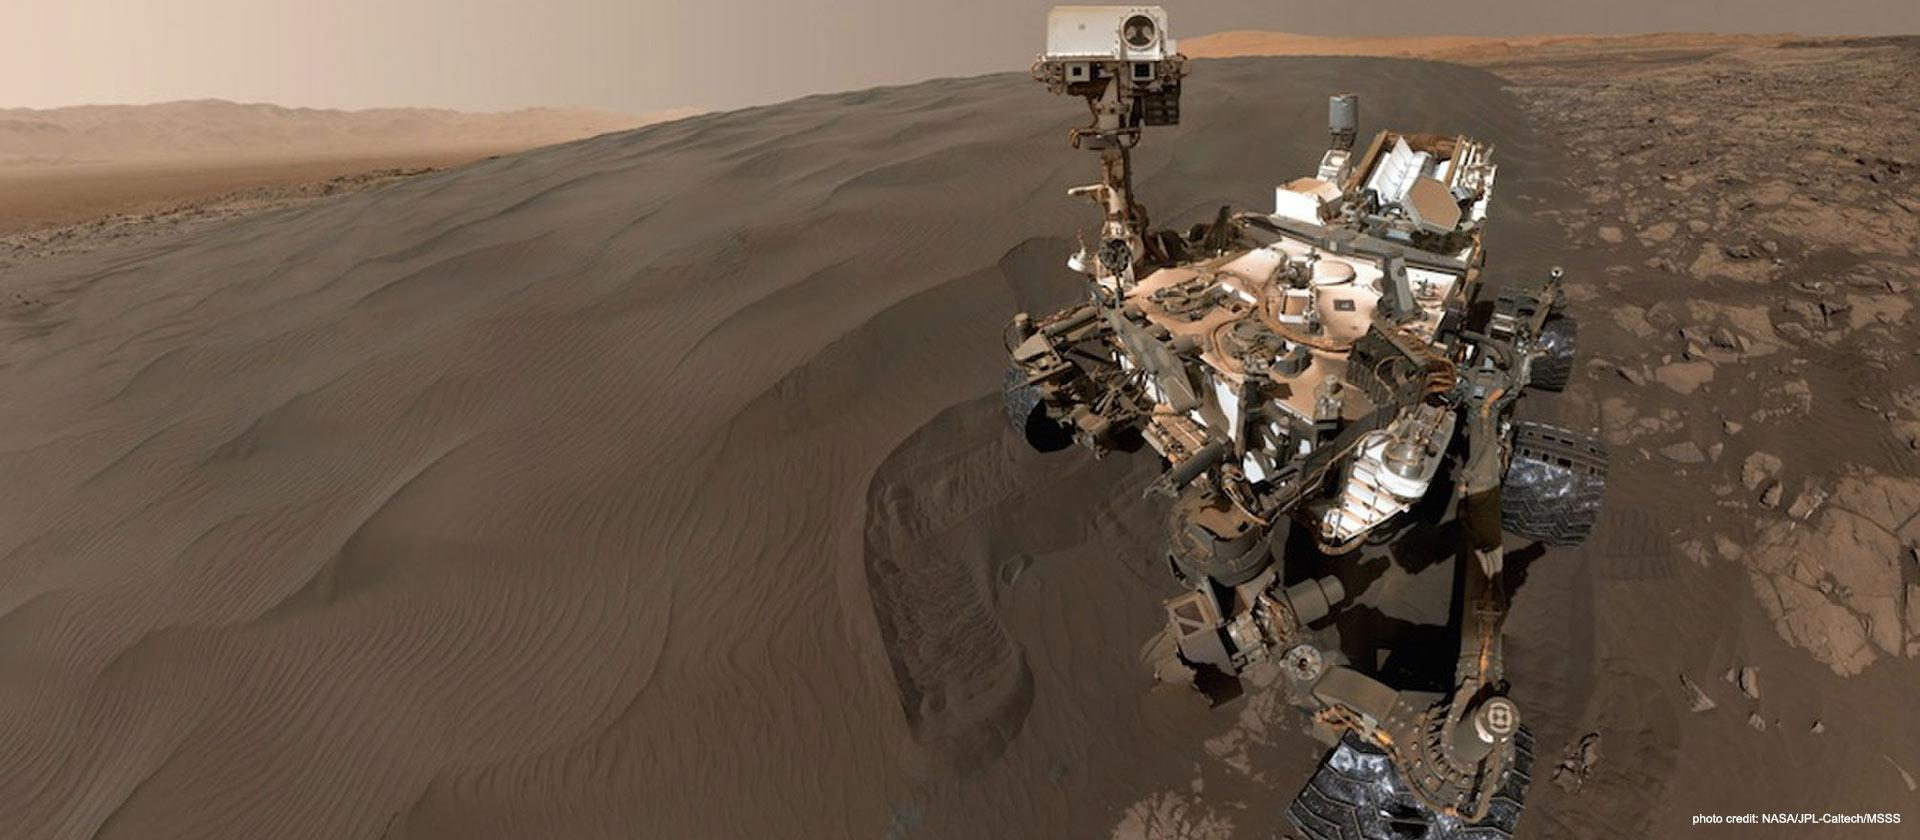 Photo of Mars Rover. Photo credit: NASA/JPL-Caltech/MSSS